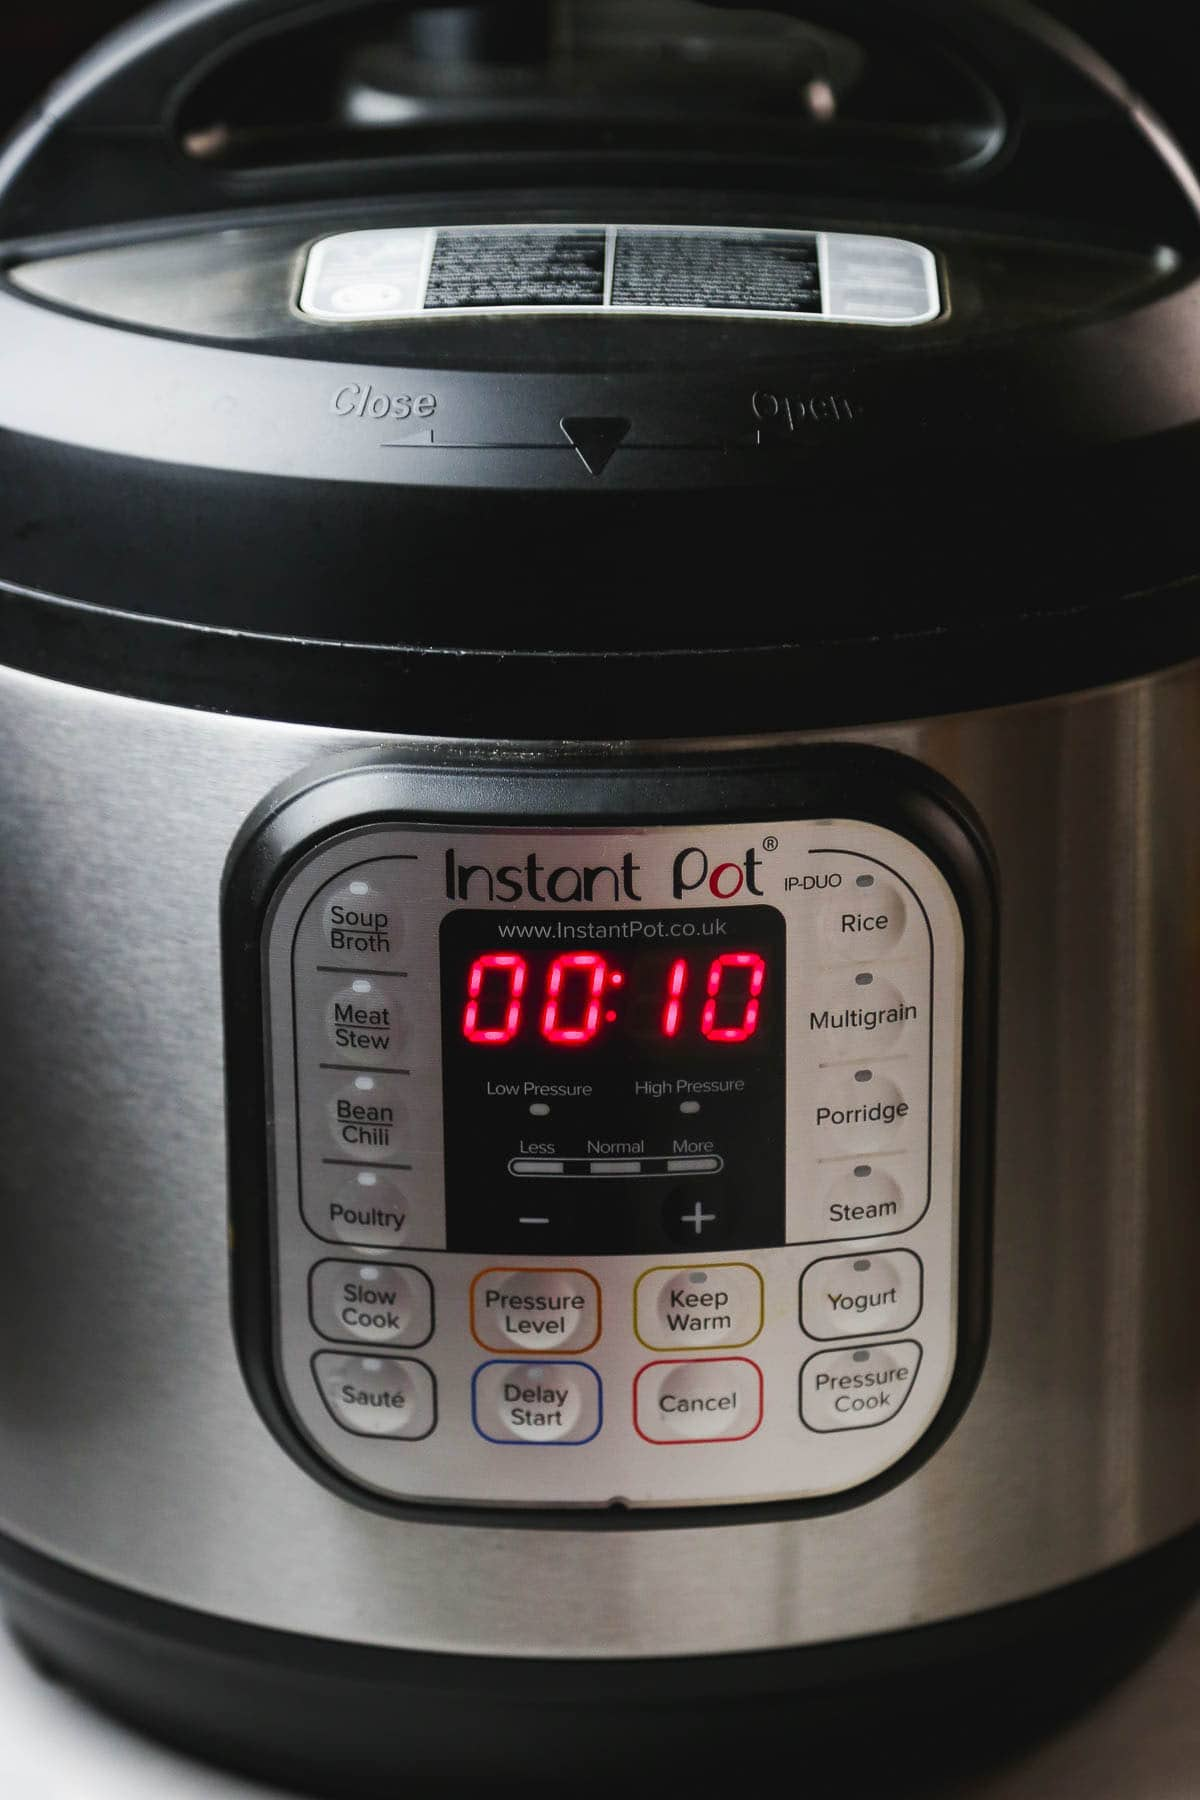 An Instant Pot showing the cooking time; 10 minutes on high pressure